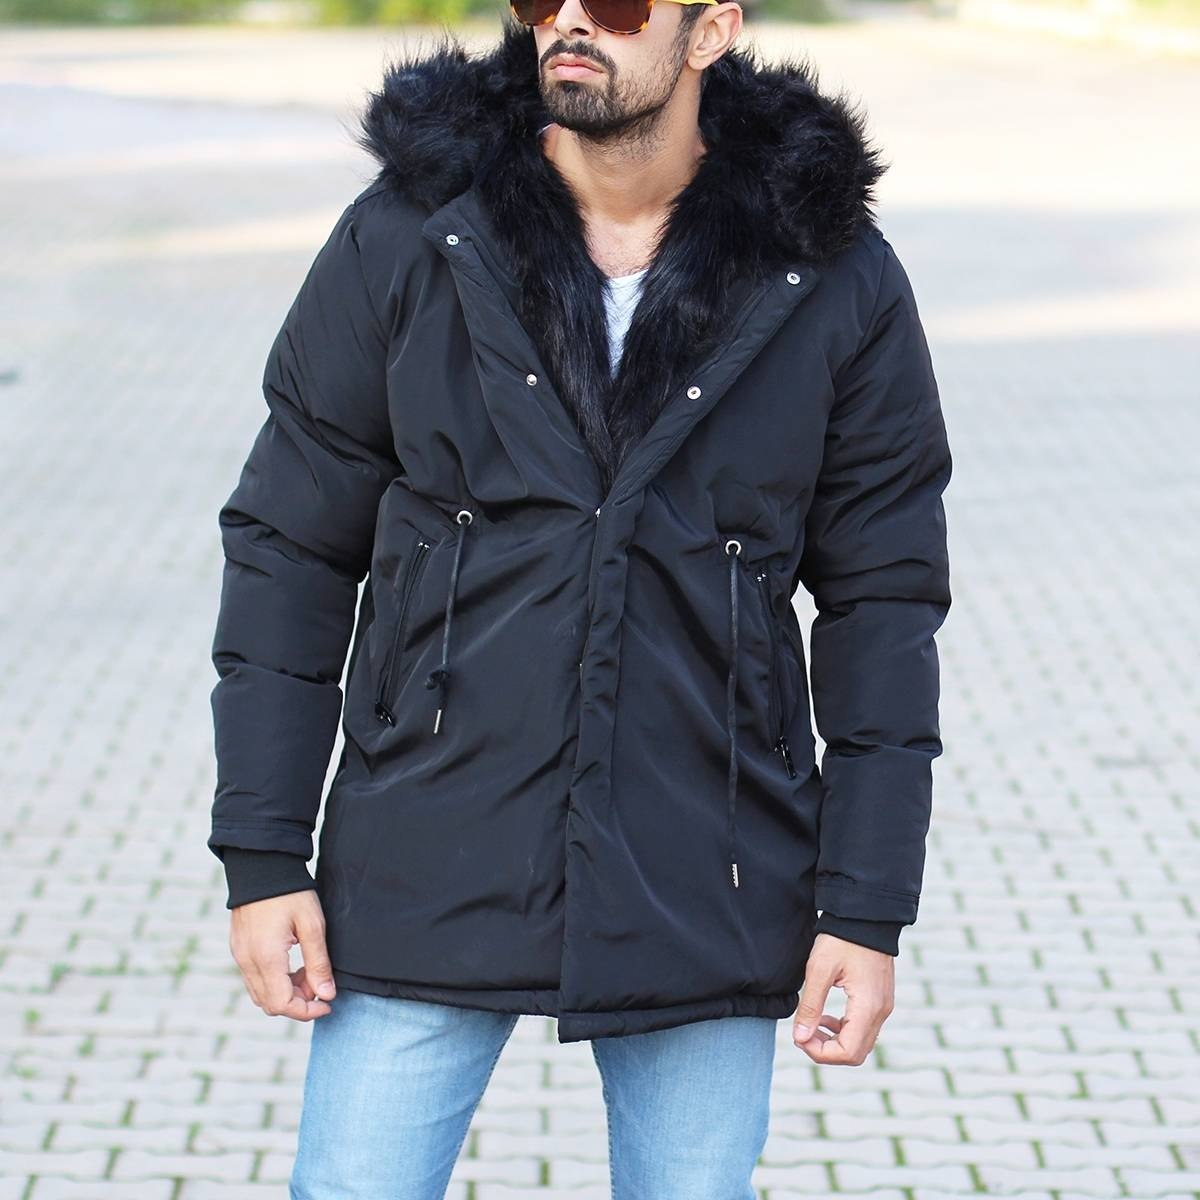 Winter Furry Puffy Coat Black Mv Premium Brand - 9